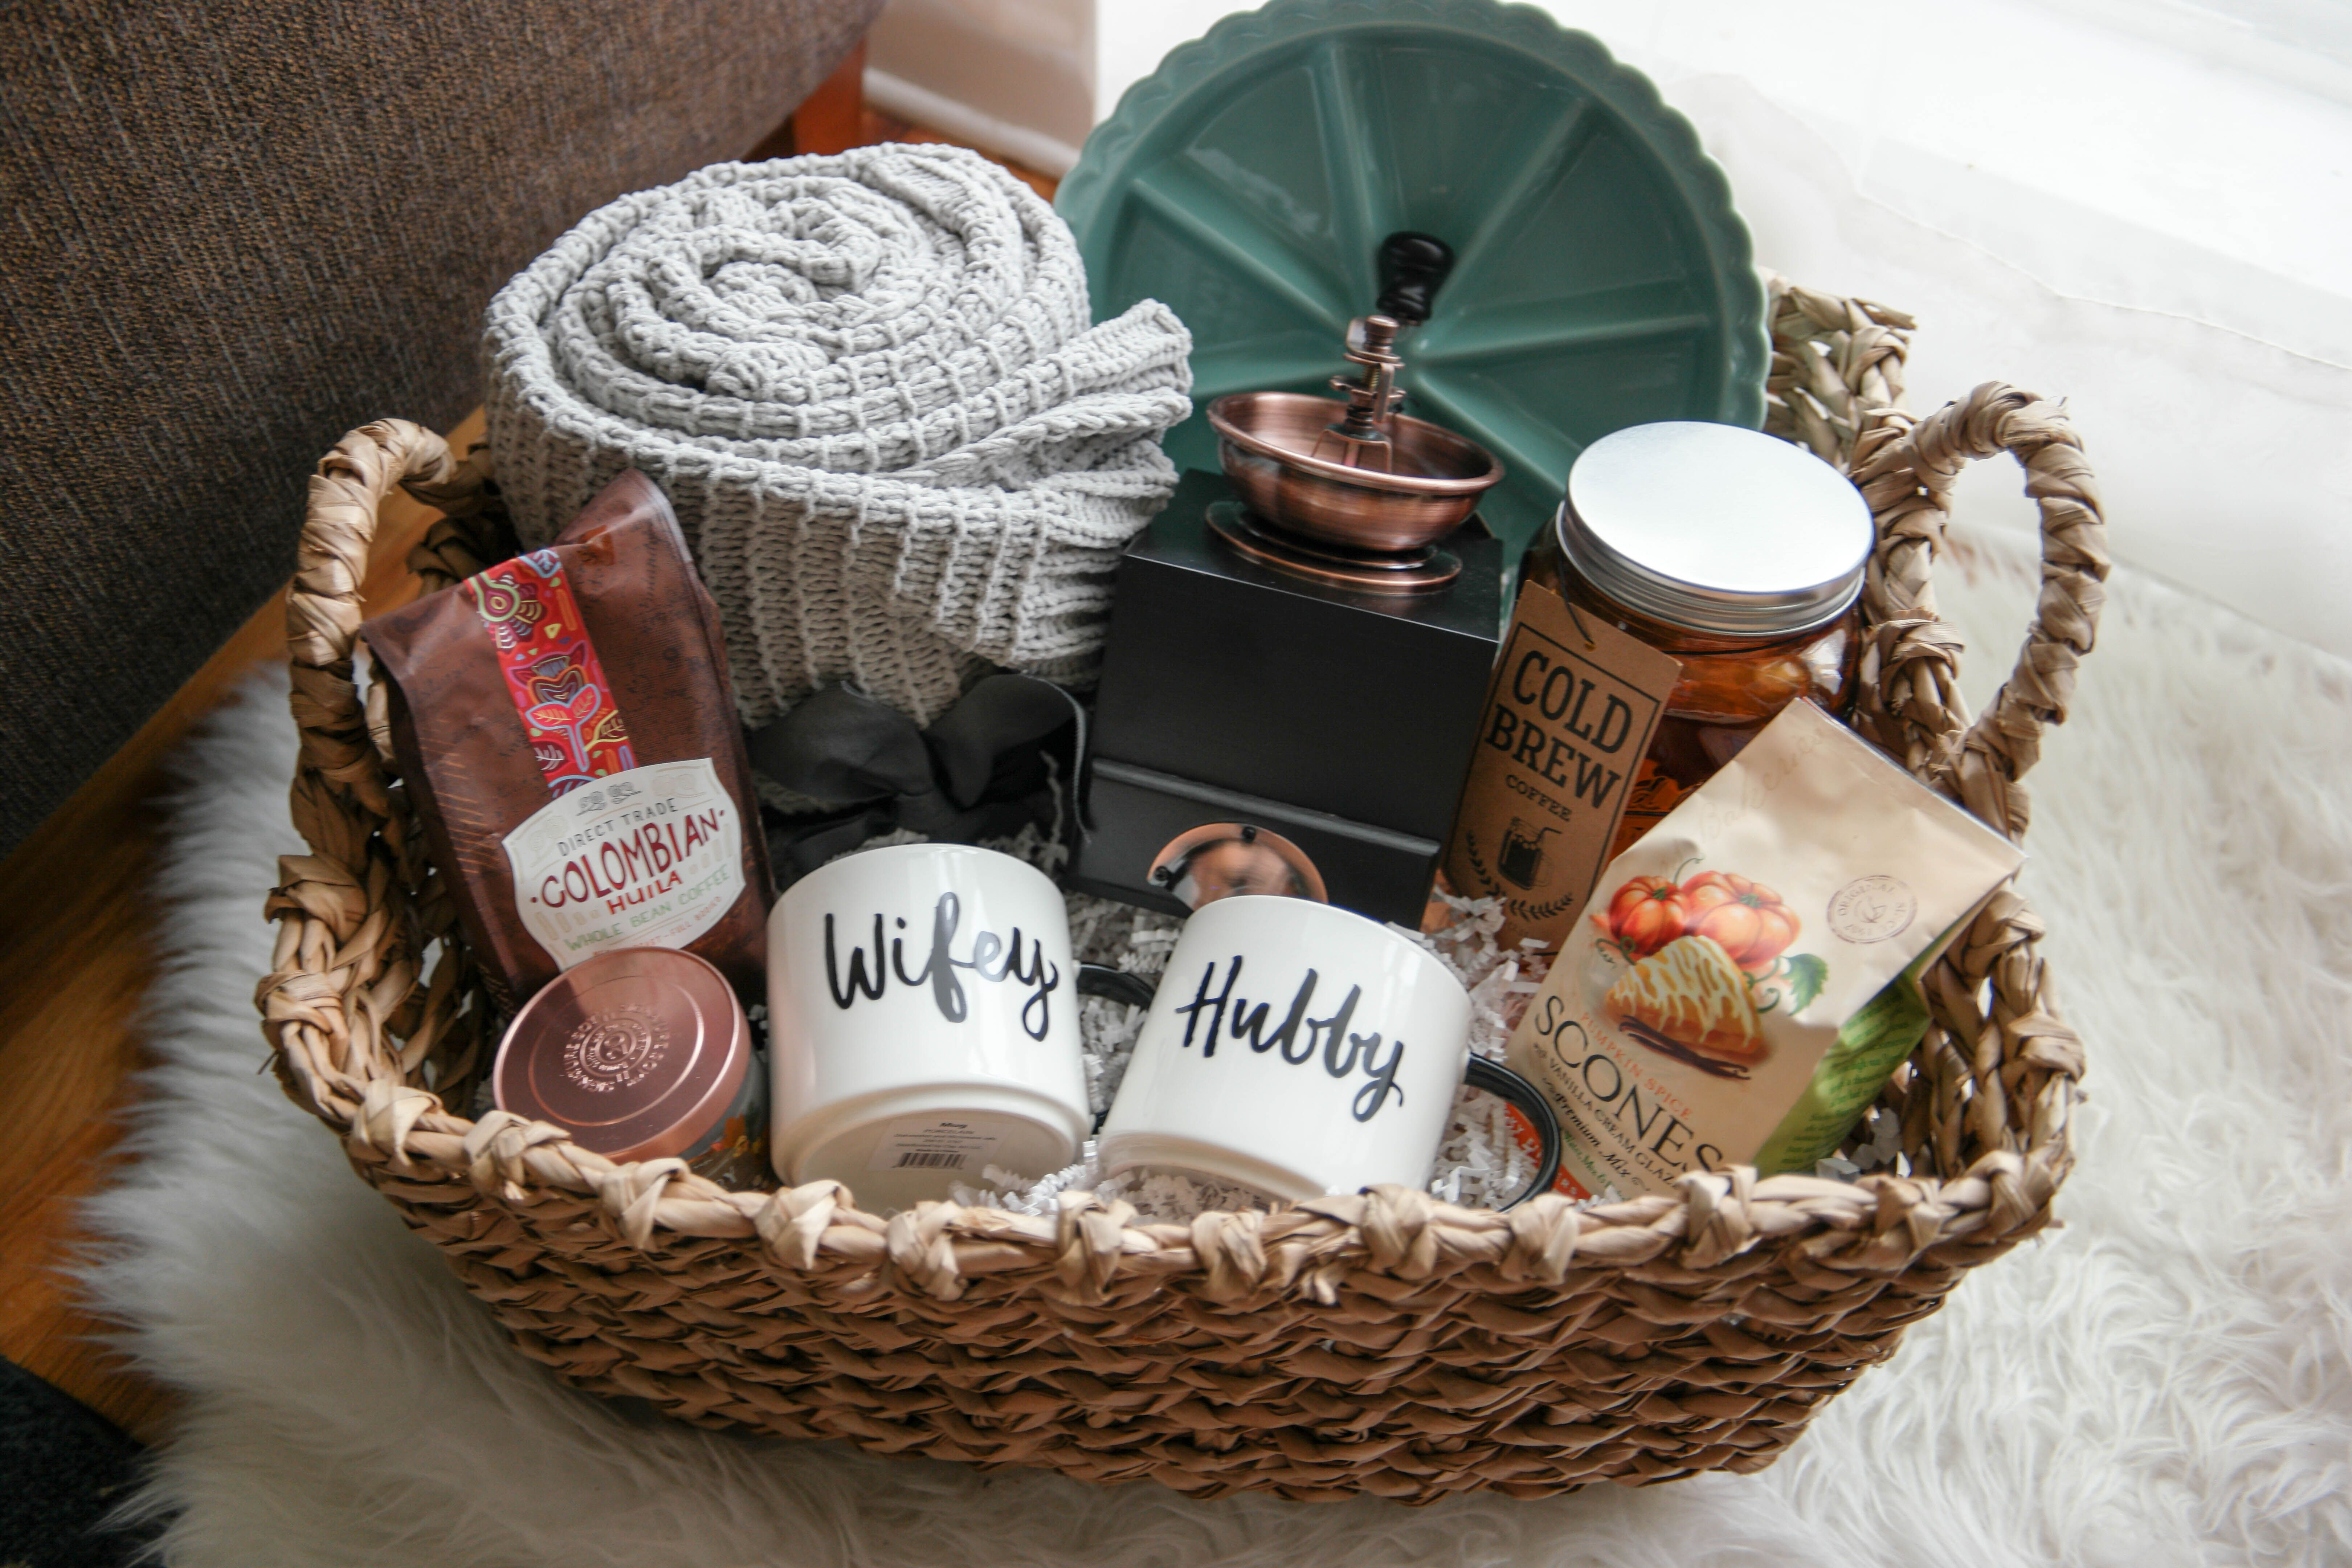 A Cozy Morning Gift Basket A Perfect Gift For Newlyweds My Mountain Wild Christmas Gift Baskets Wedding Gift Baskets Couple Gifts Basket